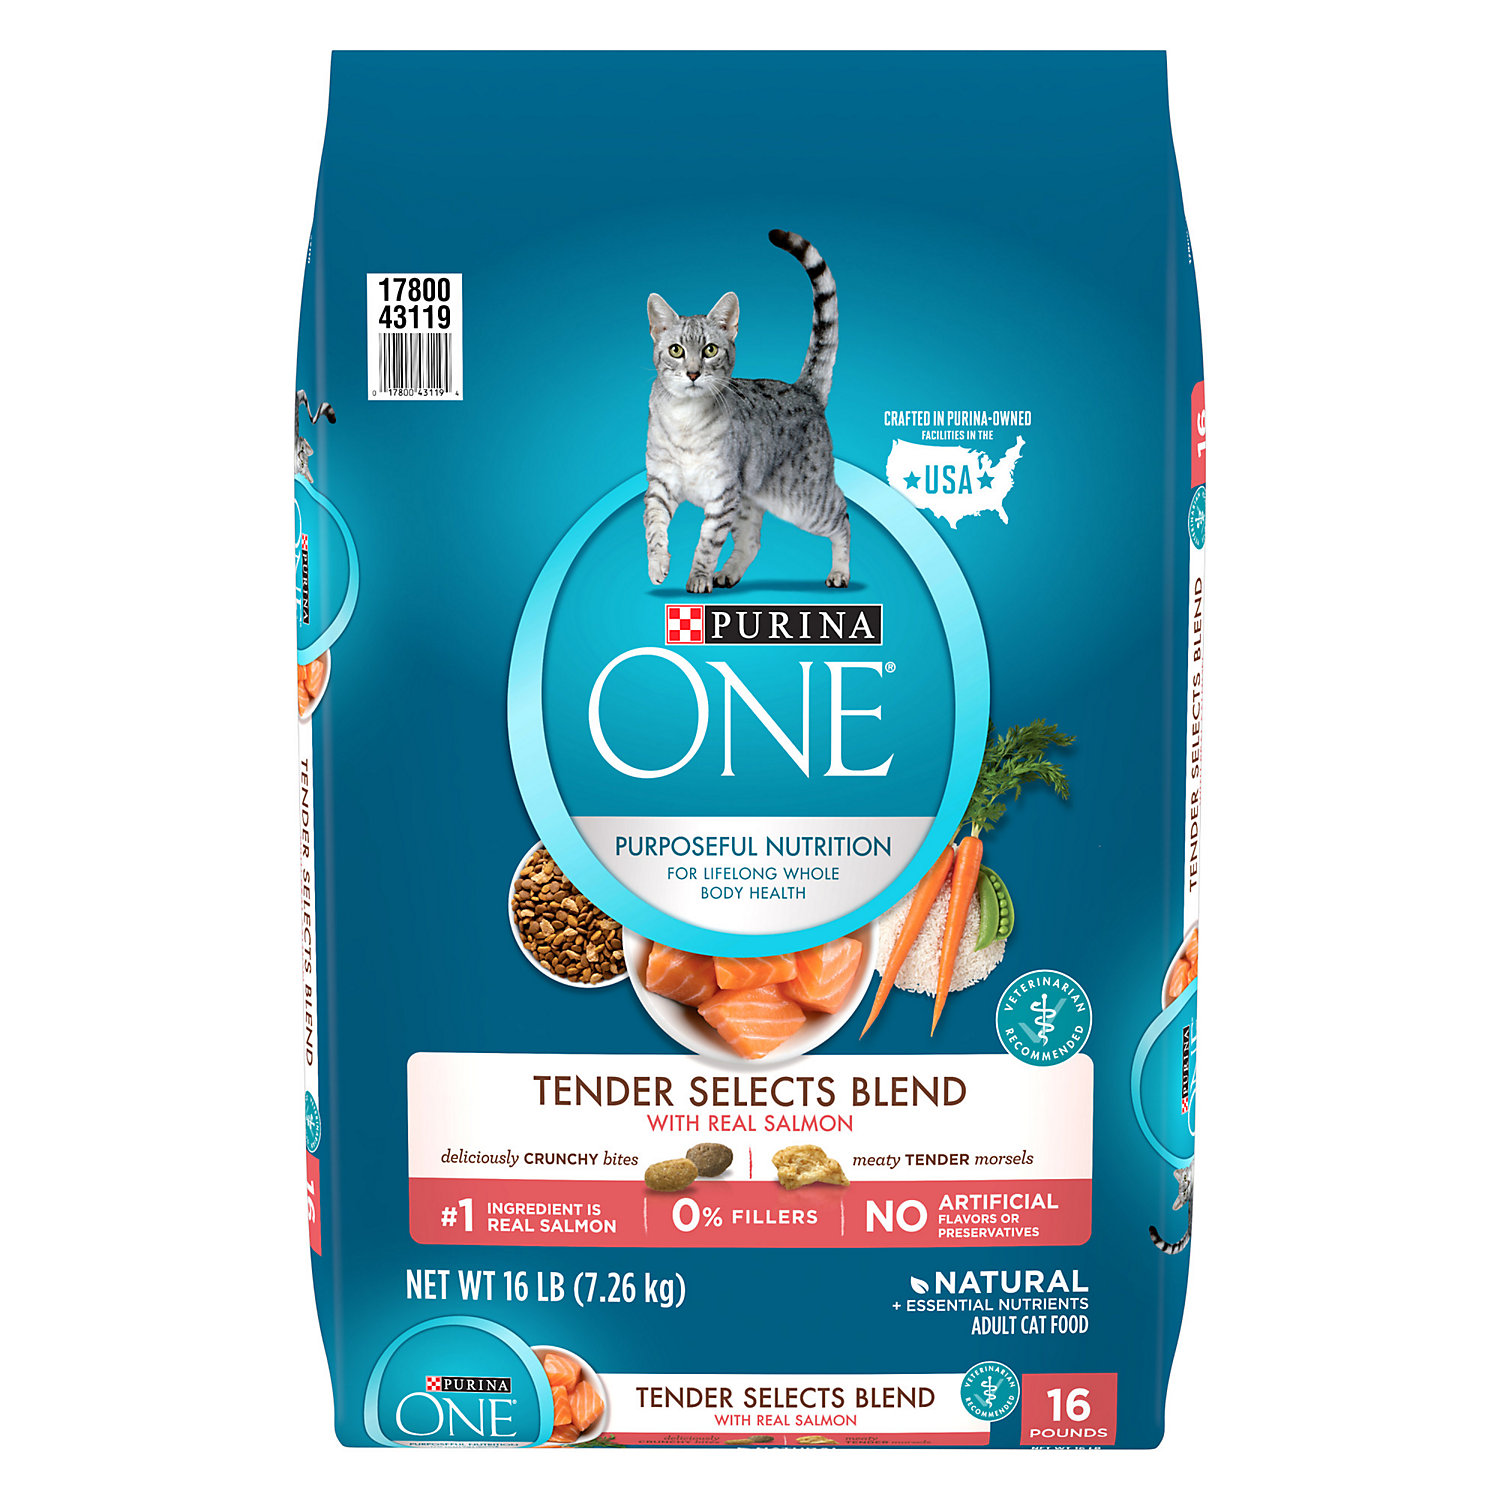 Purina One Tender Selects Salmon Tuna Flavor Cat Food